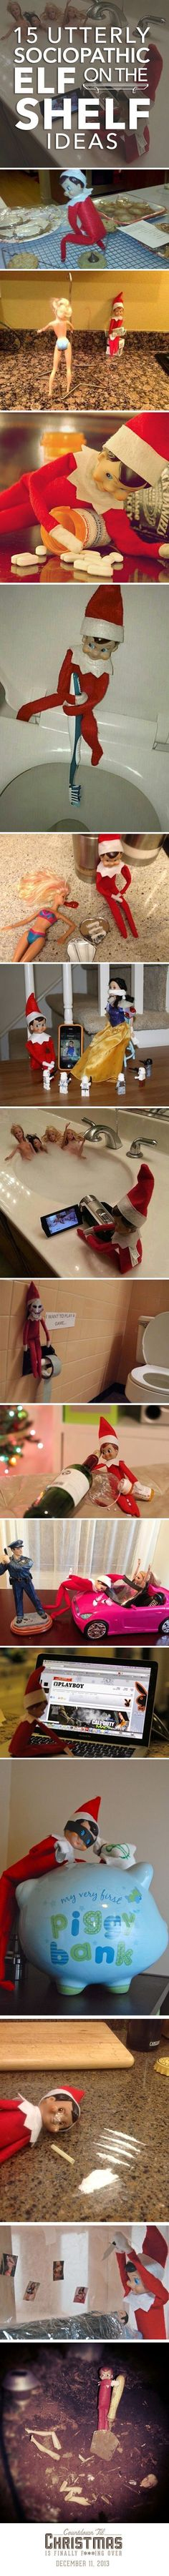 I think the elf on the shelf thing is uber creepy. Some of these are pretty funny though. Source: newdz